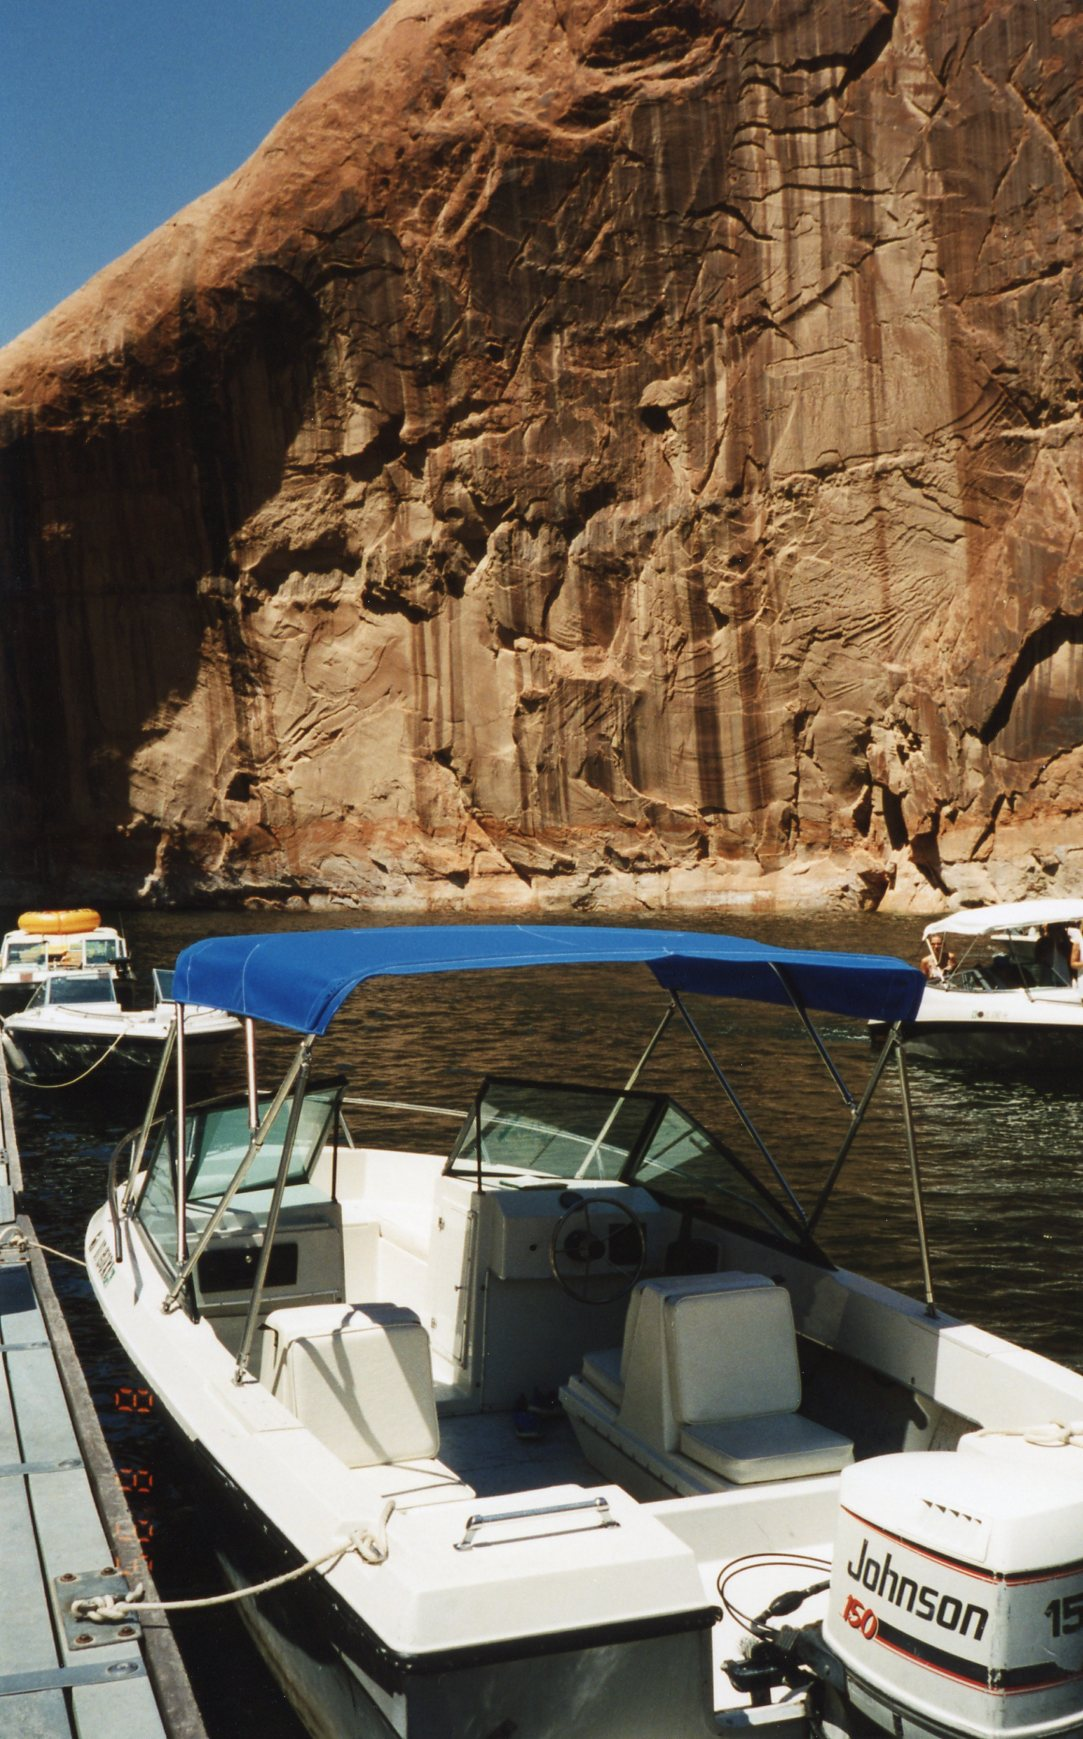 1995.08.08      094  S.W. Vac. Lake Powell, Utah, Boat at Rainbow Bridge Dock and marina